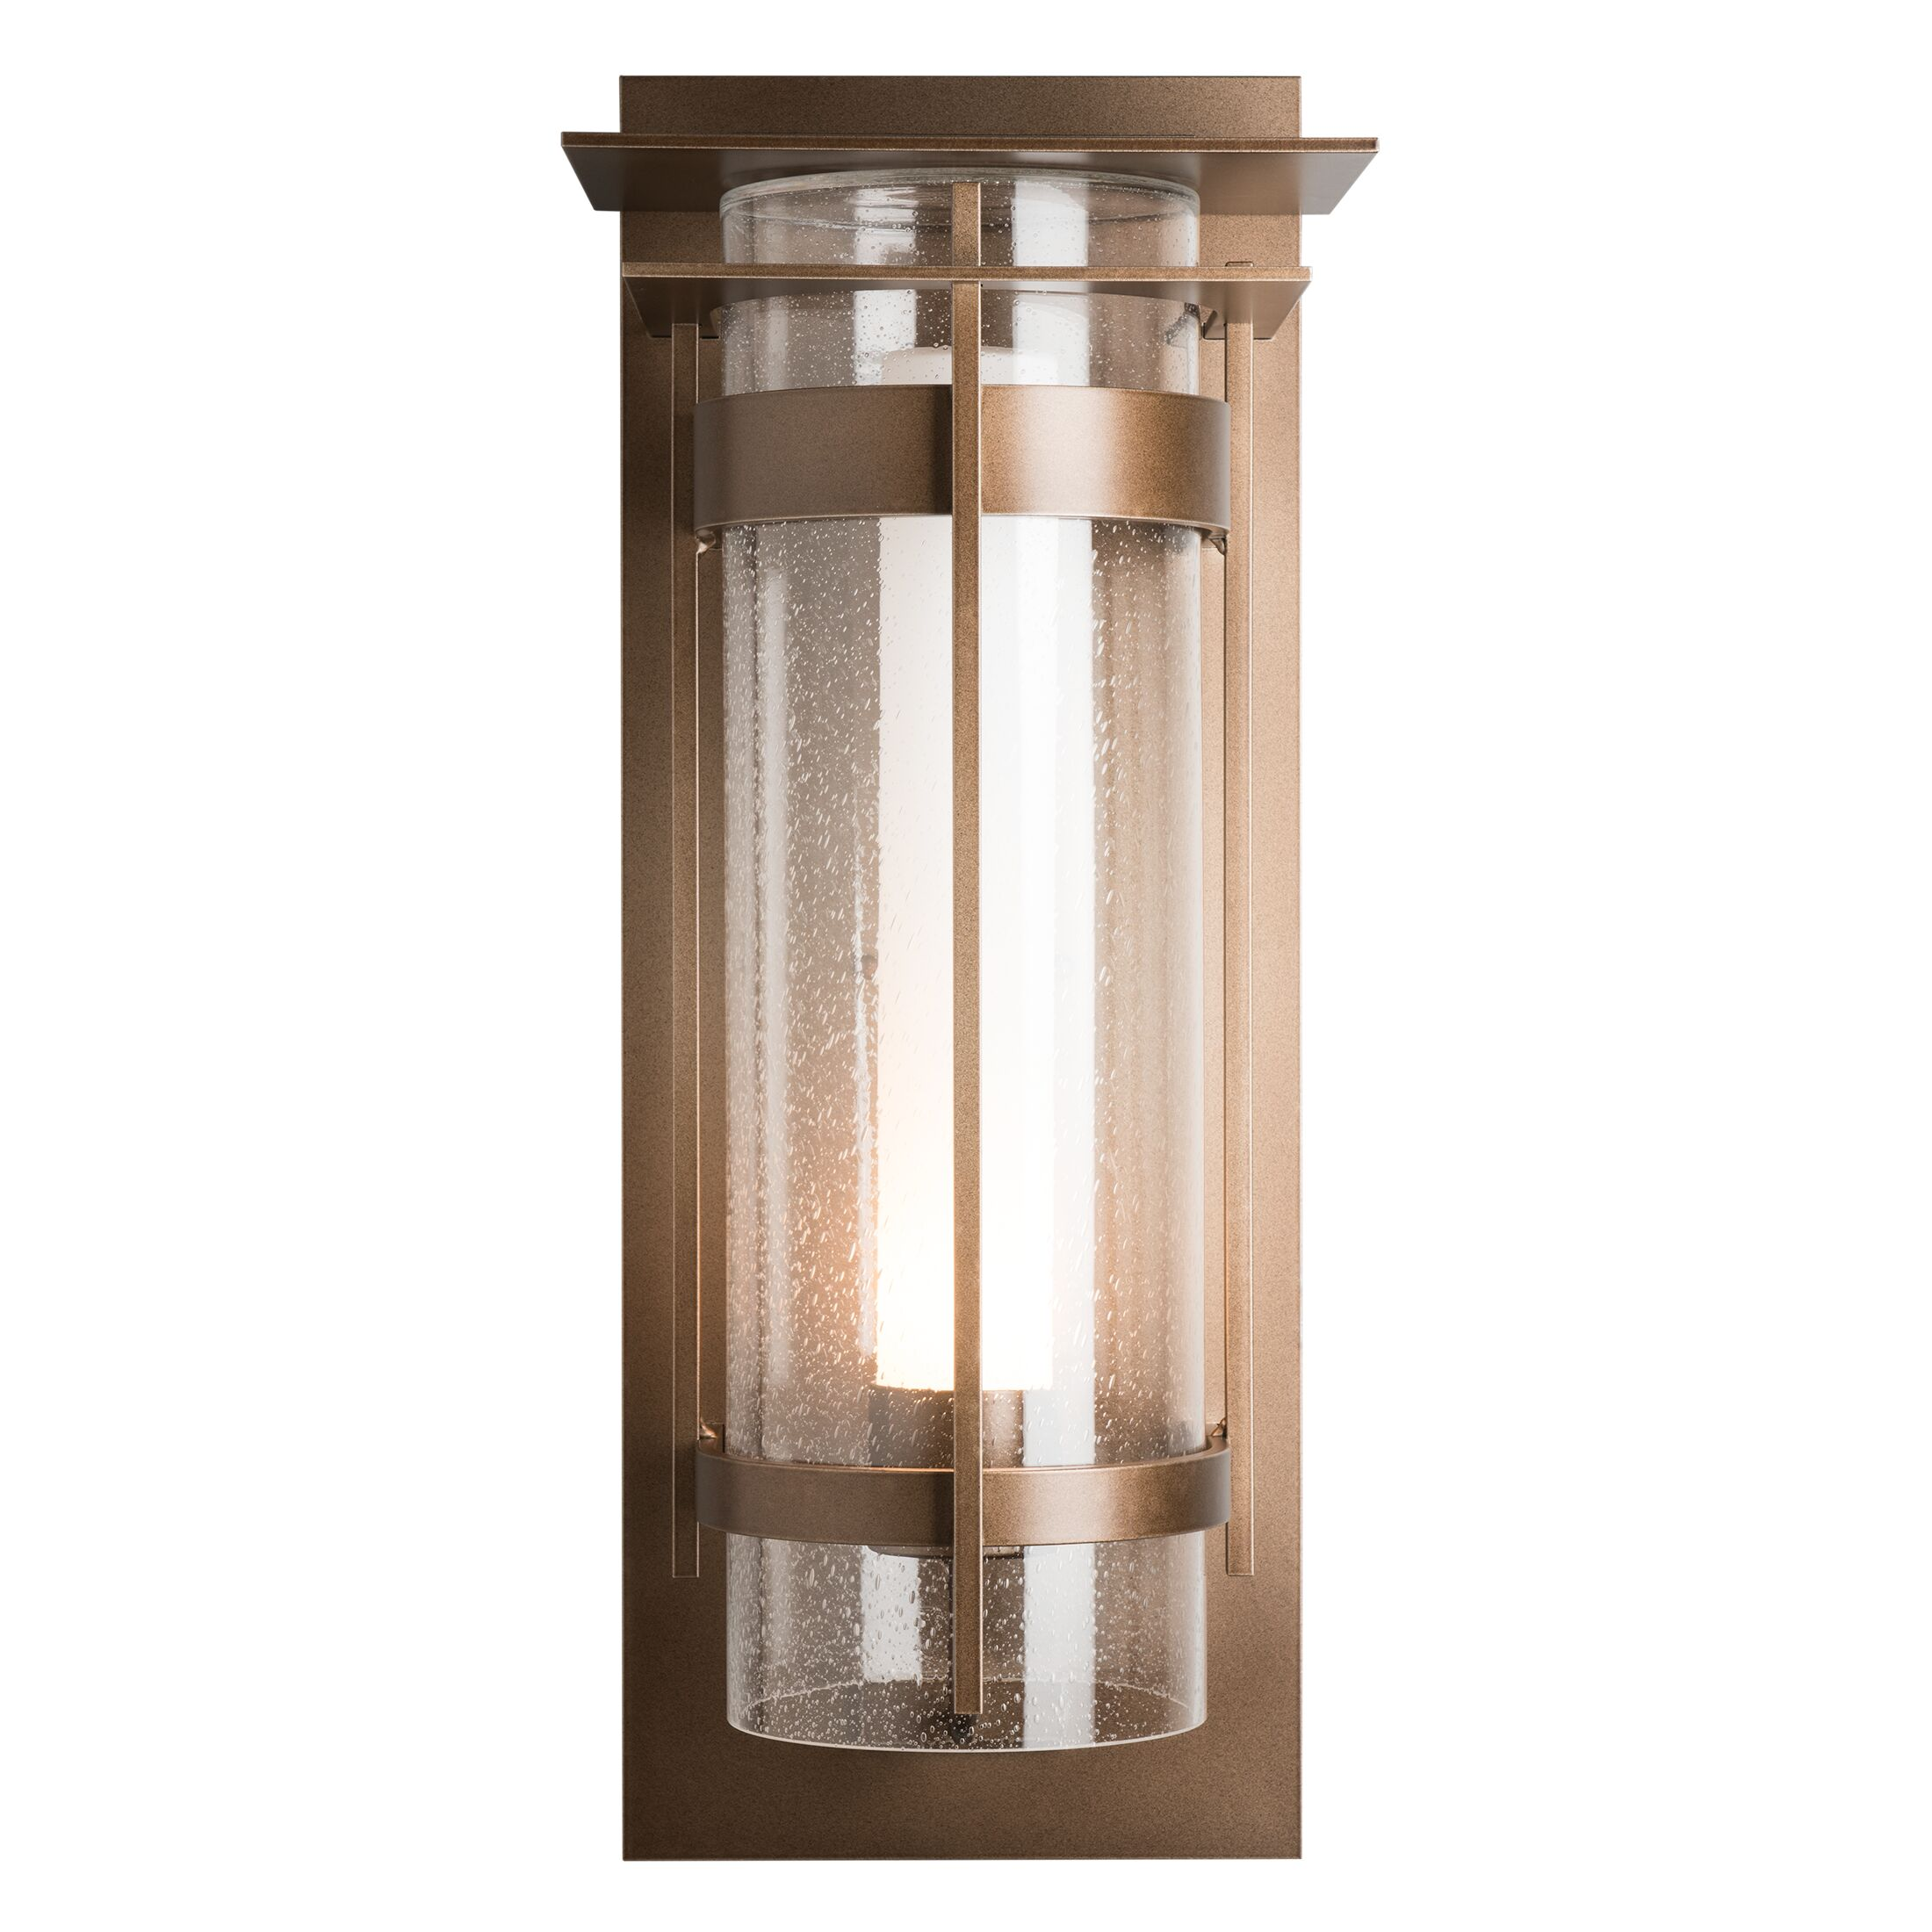 Product Detail: Banded Seeded Glass XL Outdoor Sconce with Top Plate